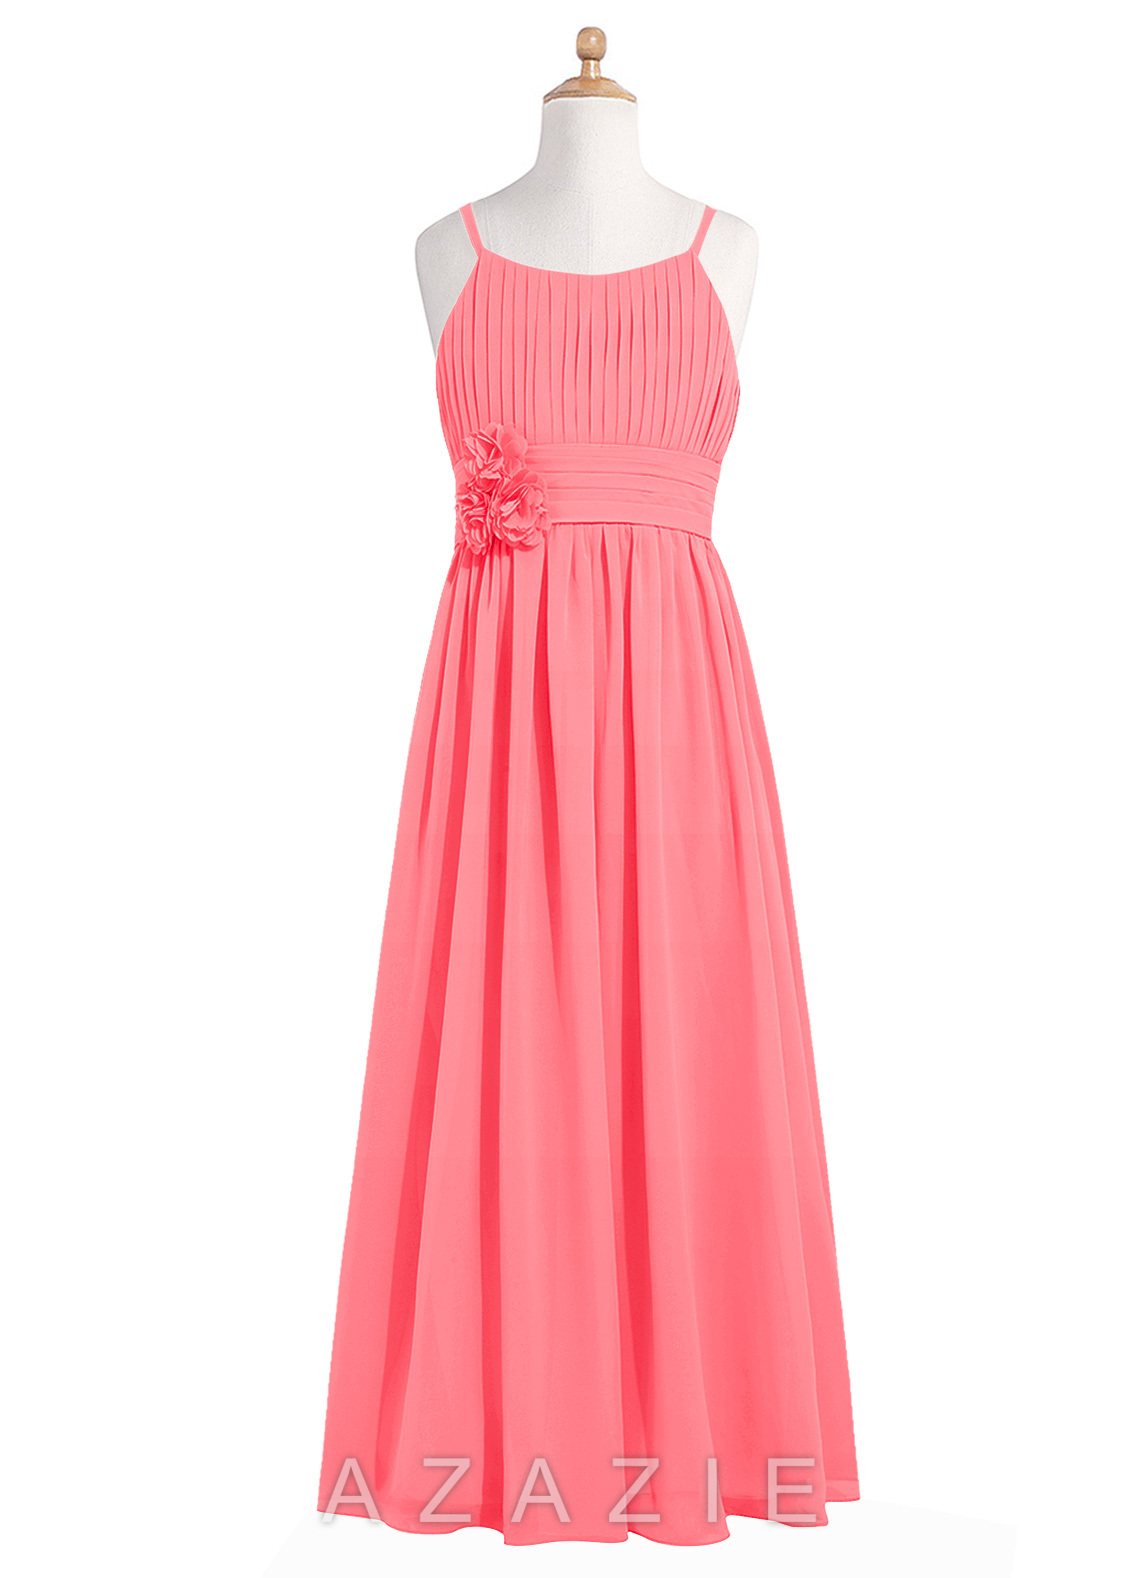 Azazie Astrid JBD Junior Bridesmaid Dress